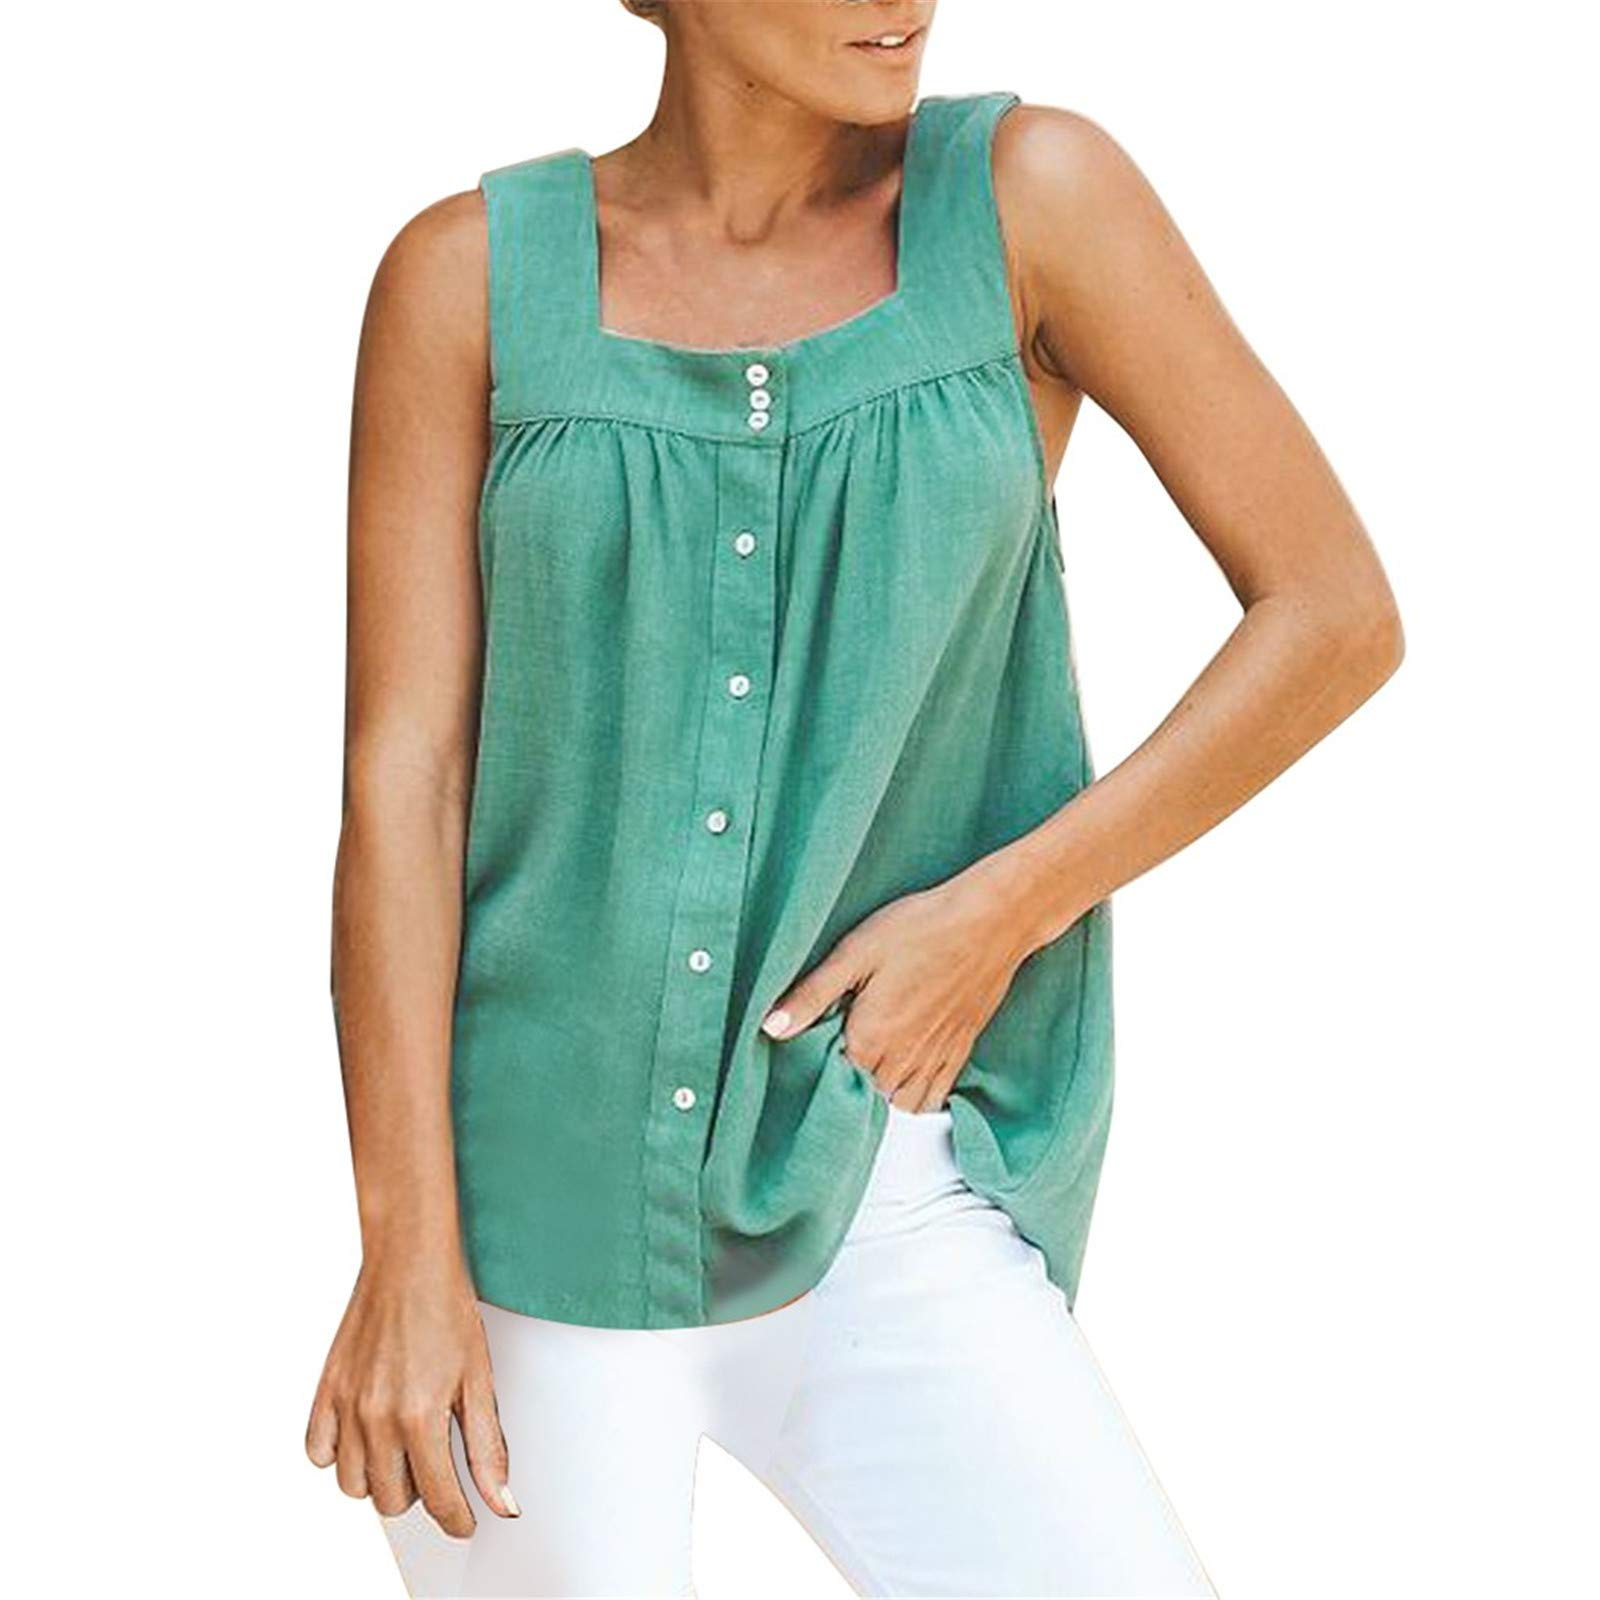 wodceeke Womens Tank Top,Summer Soild Button Pleated Sleeveless camisole Tops(Green,M)